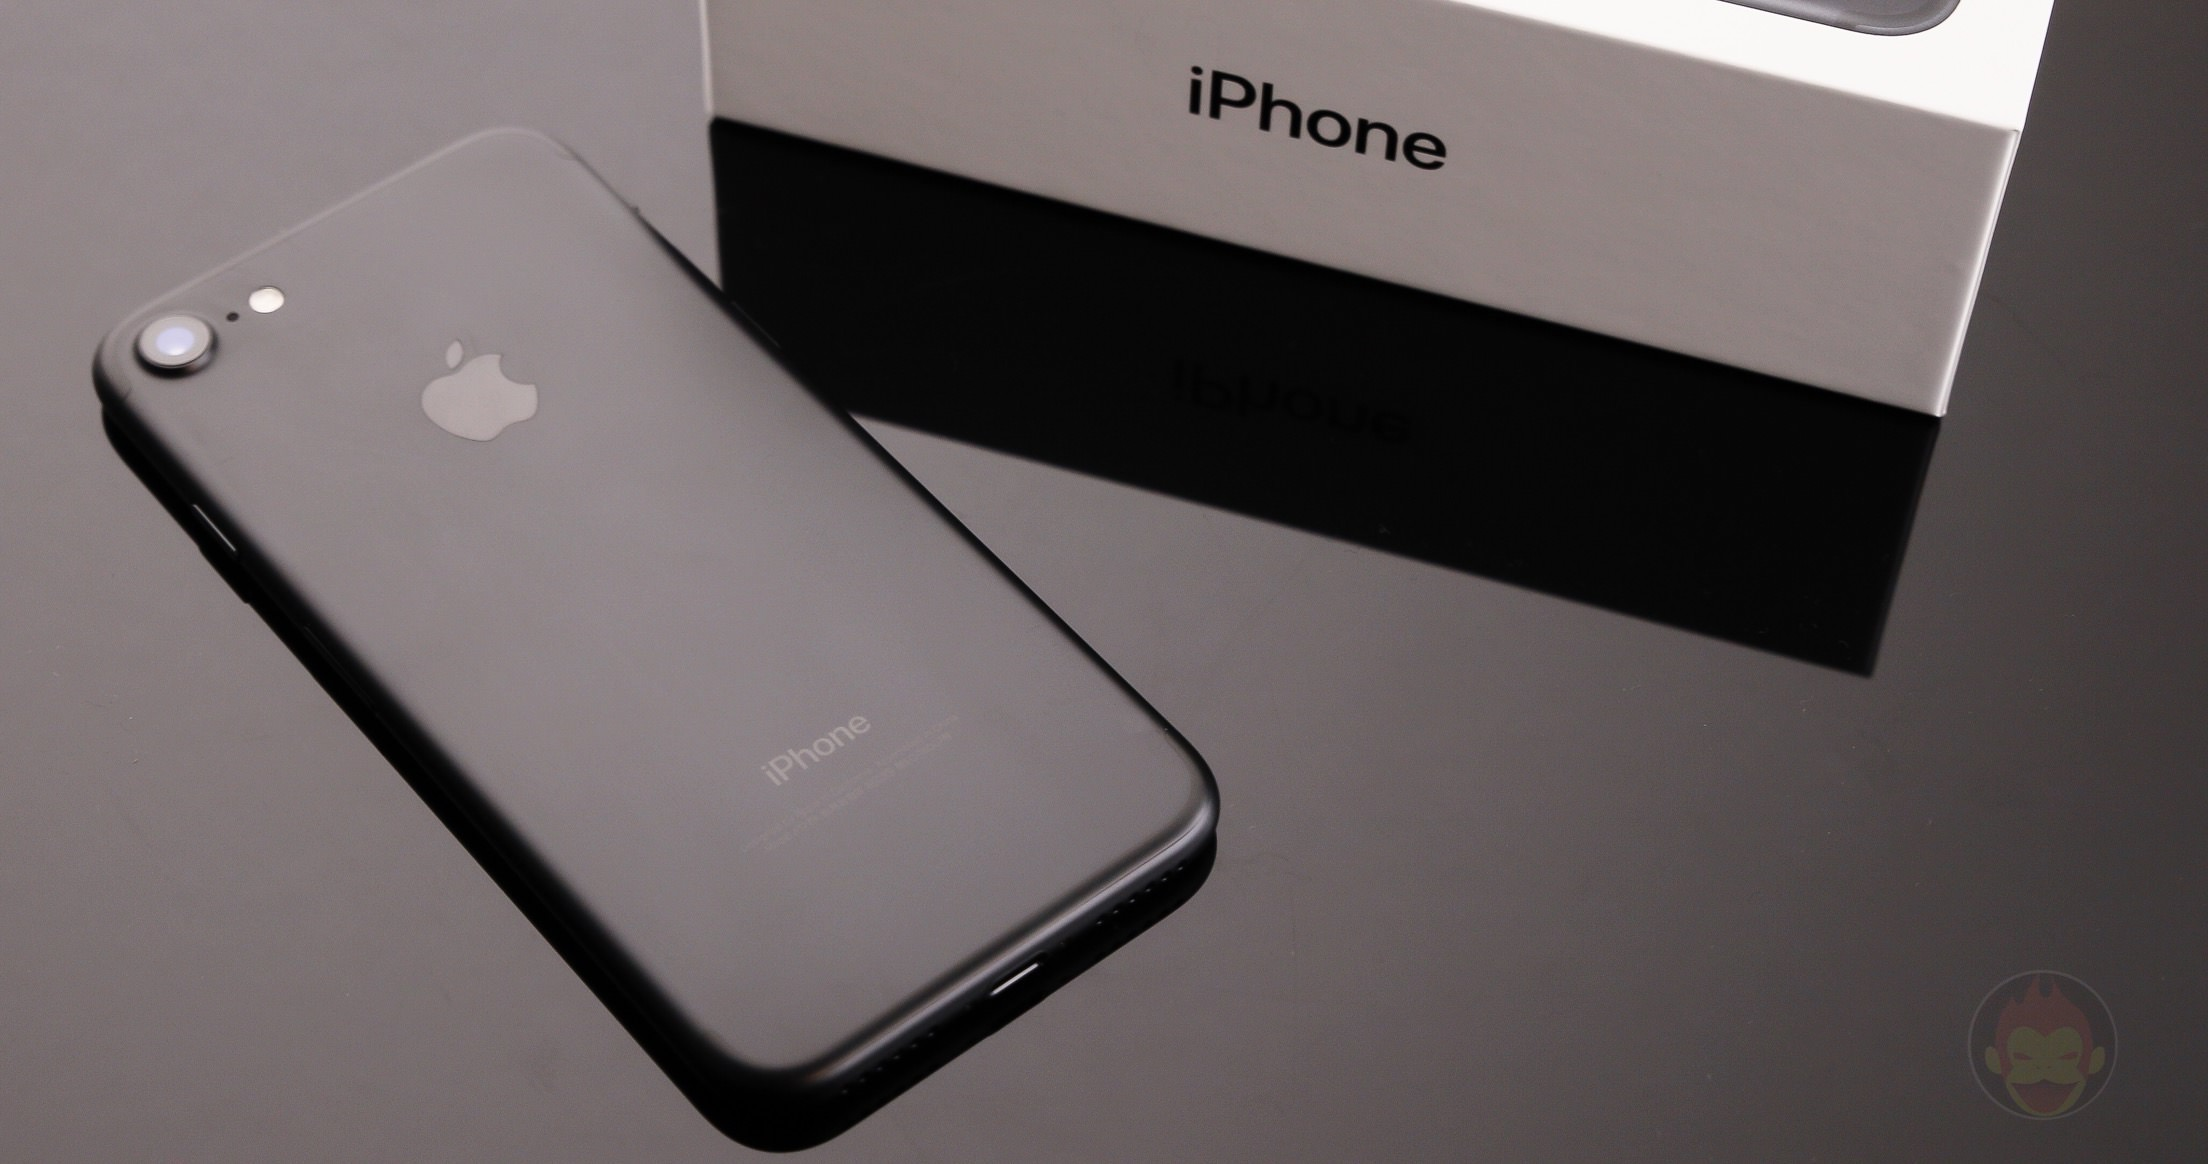 iPhone-7-Photo-Review-14.jpg